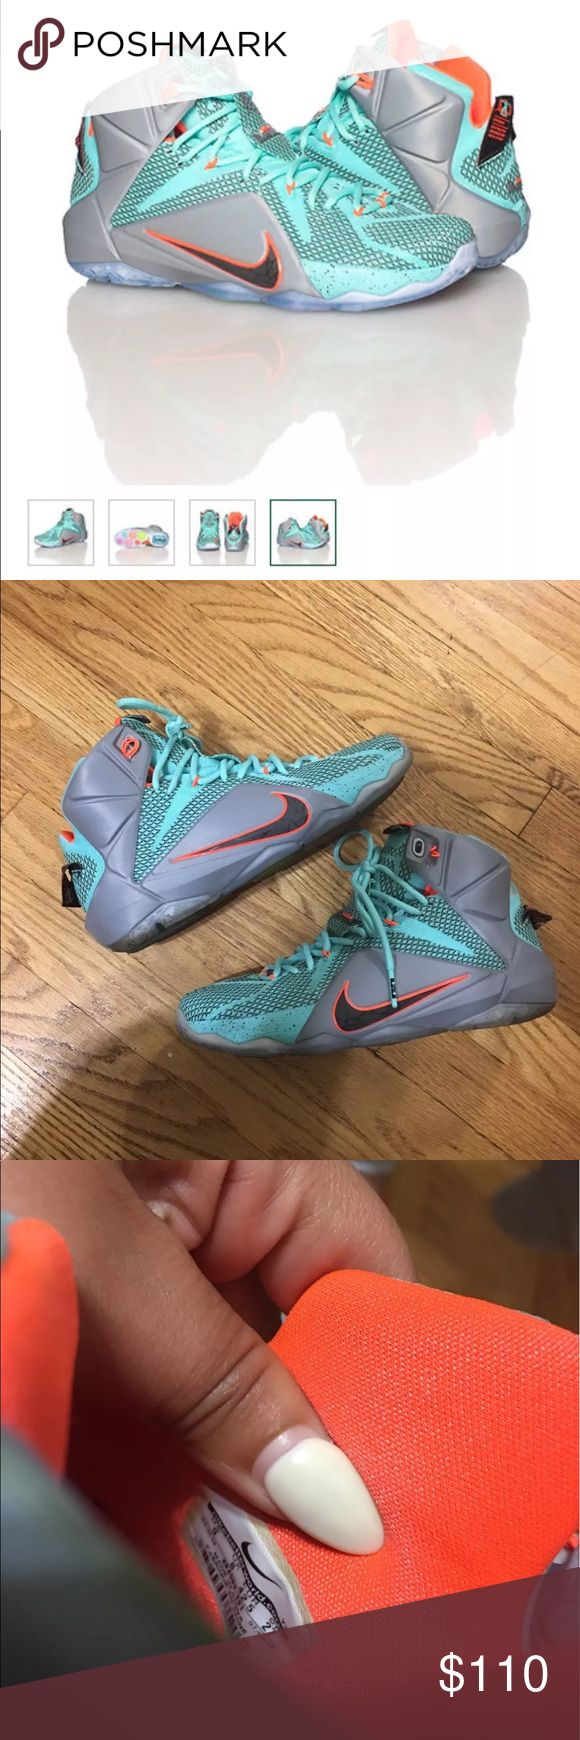 Rare Lebron Nike Colorway: Hyper Turquoise Size 9 Rare Lebron Nike Colorway: Hyper Turquoise Size 9 Easter 2014 Edition like new Nike Lebron James Shoes Sneakers